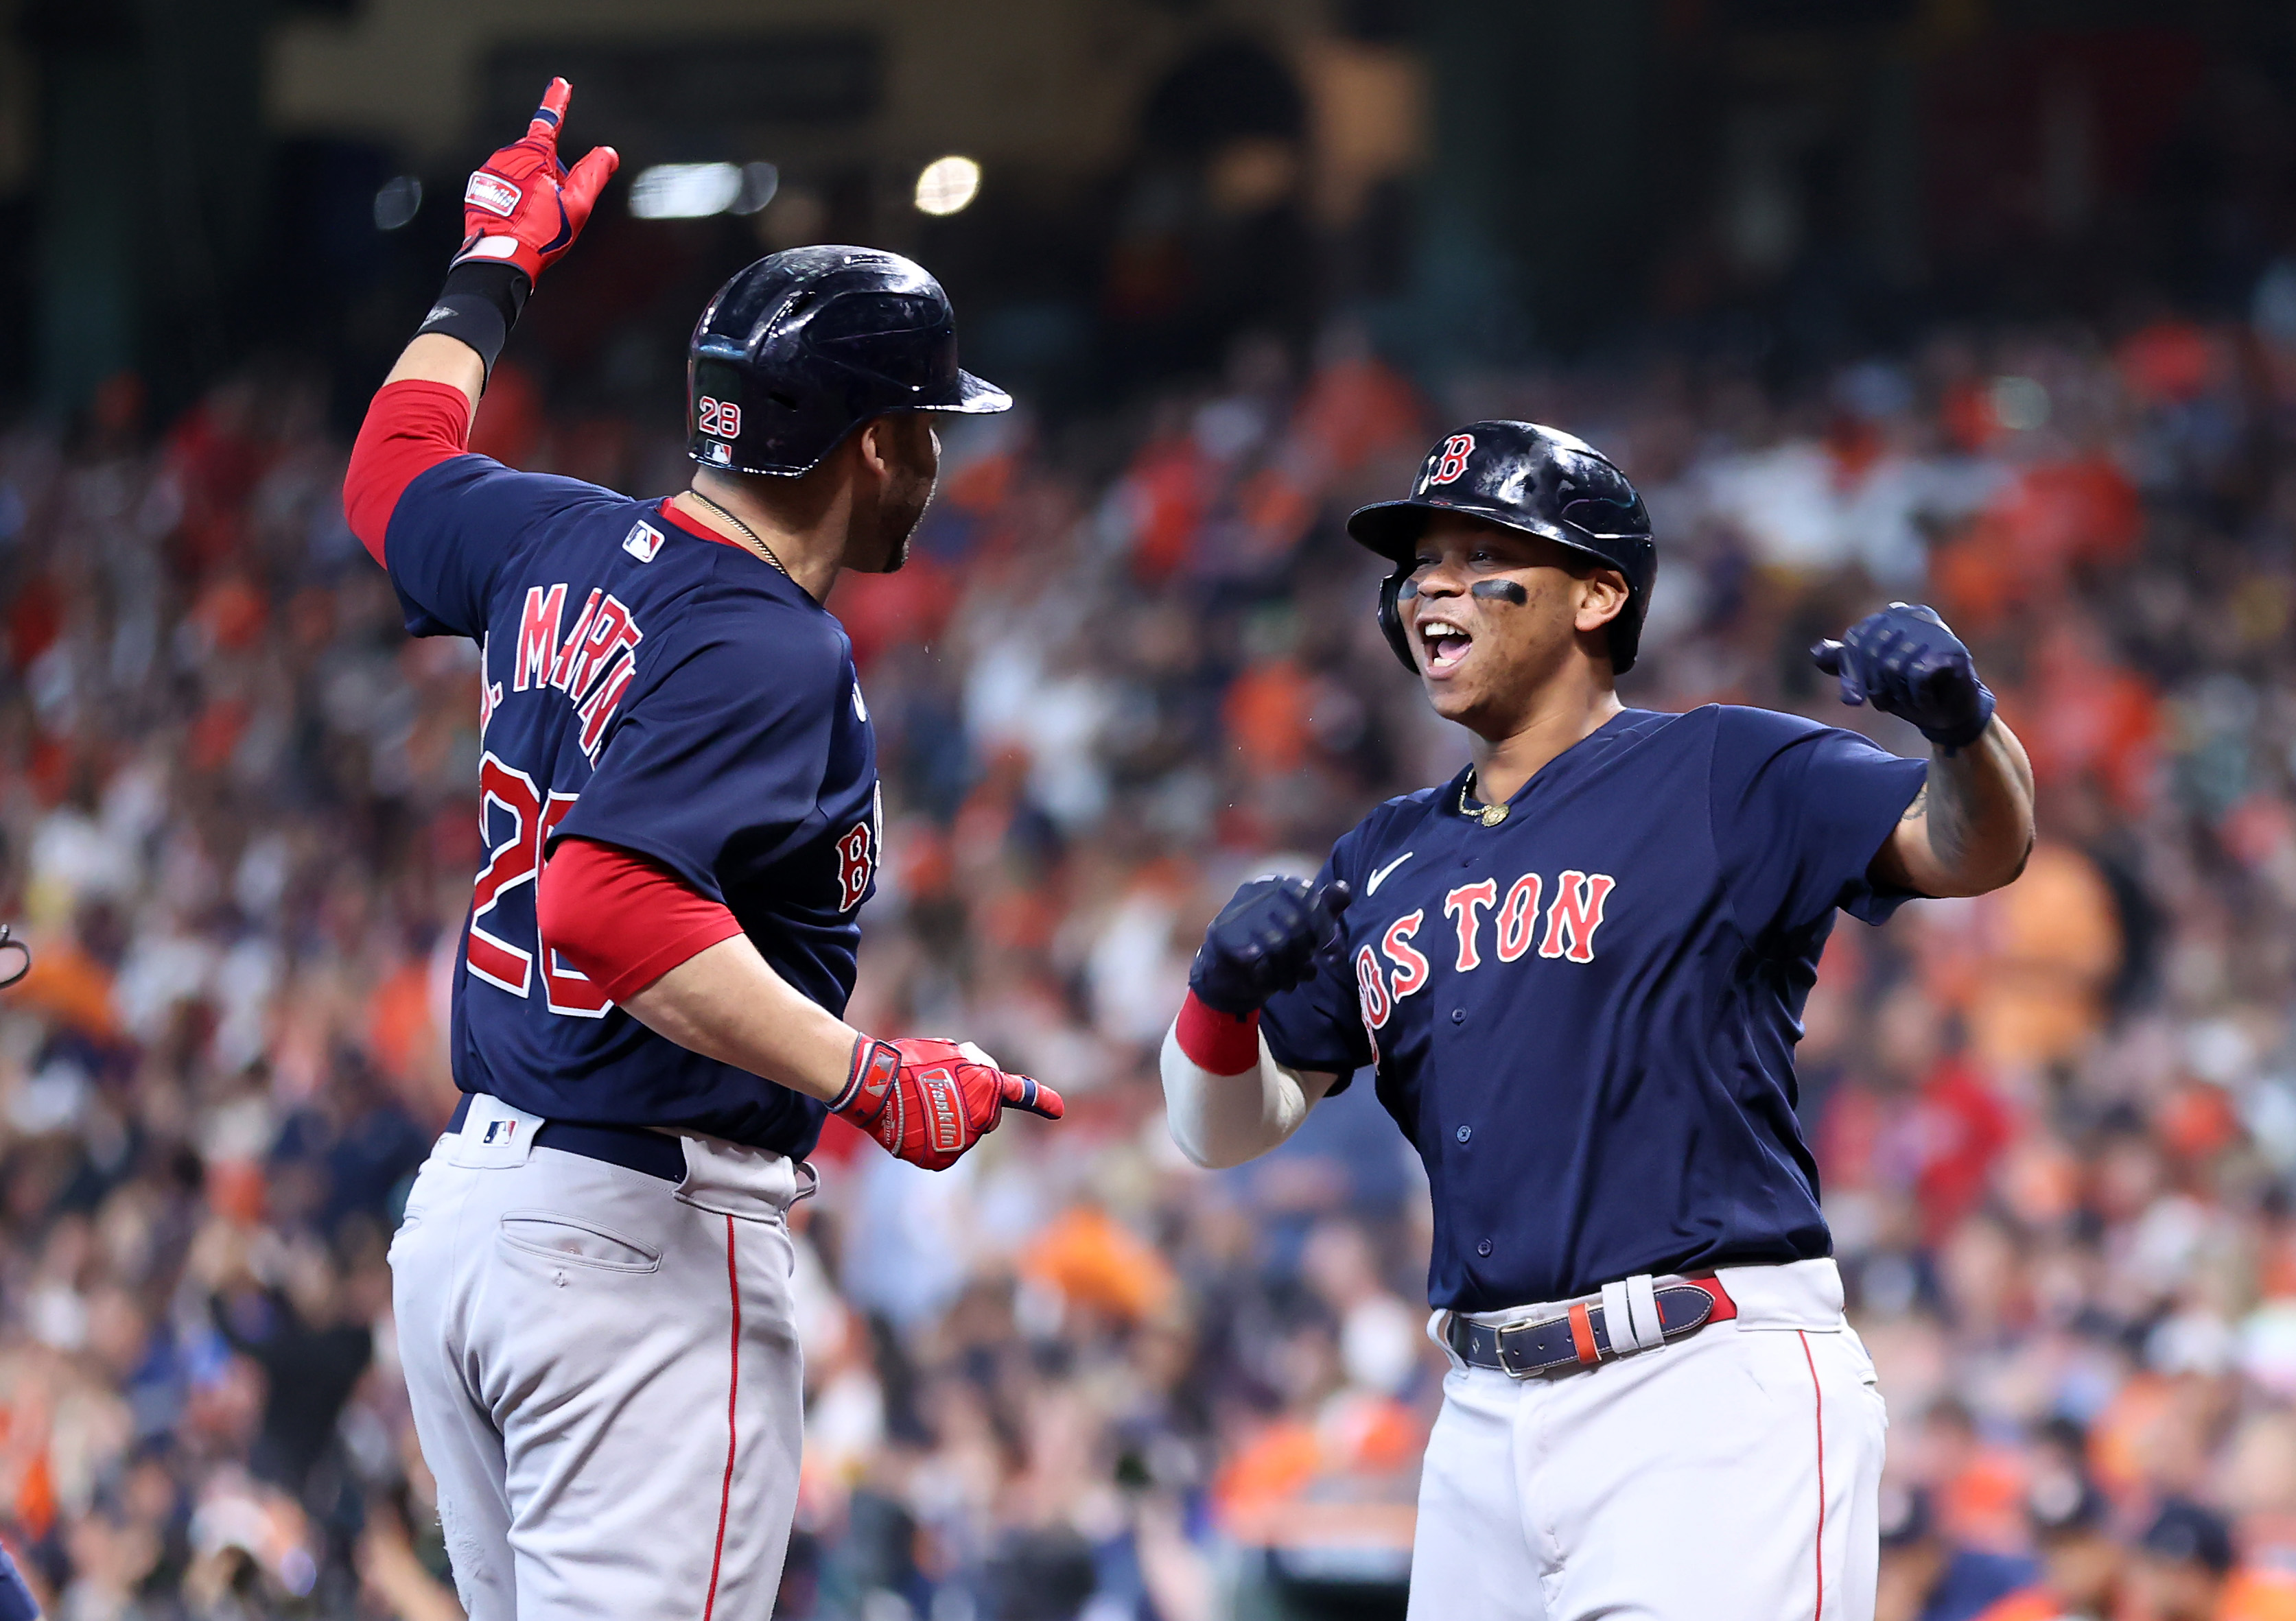 J.D. Martinez of the Boston Red Sox is congratulated by Rafael Devers after he hit a grand slam home run against the Houston Astros in the first inning of Game Two of the American League Championship Series at Minute Maid Park on October 16, 2021 in Houston, Texas.